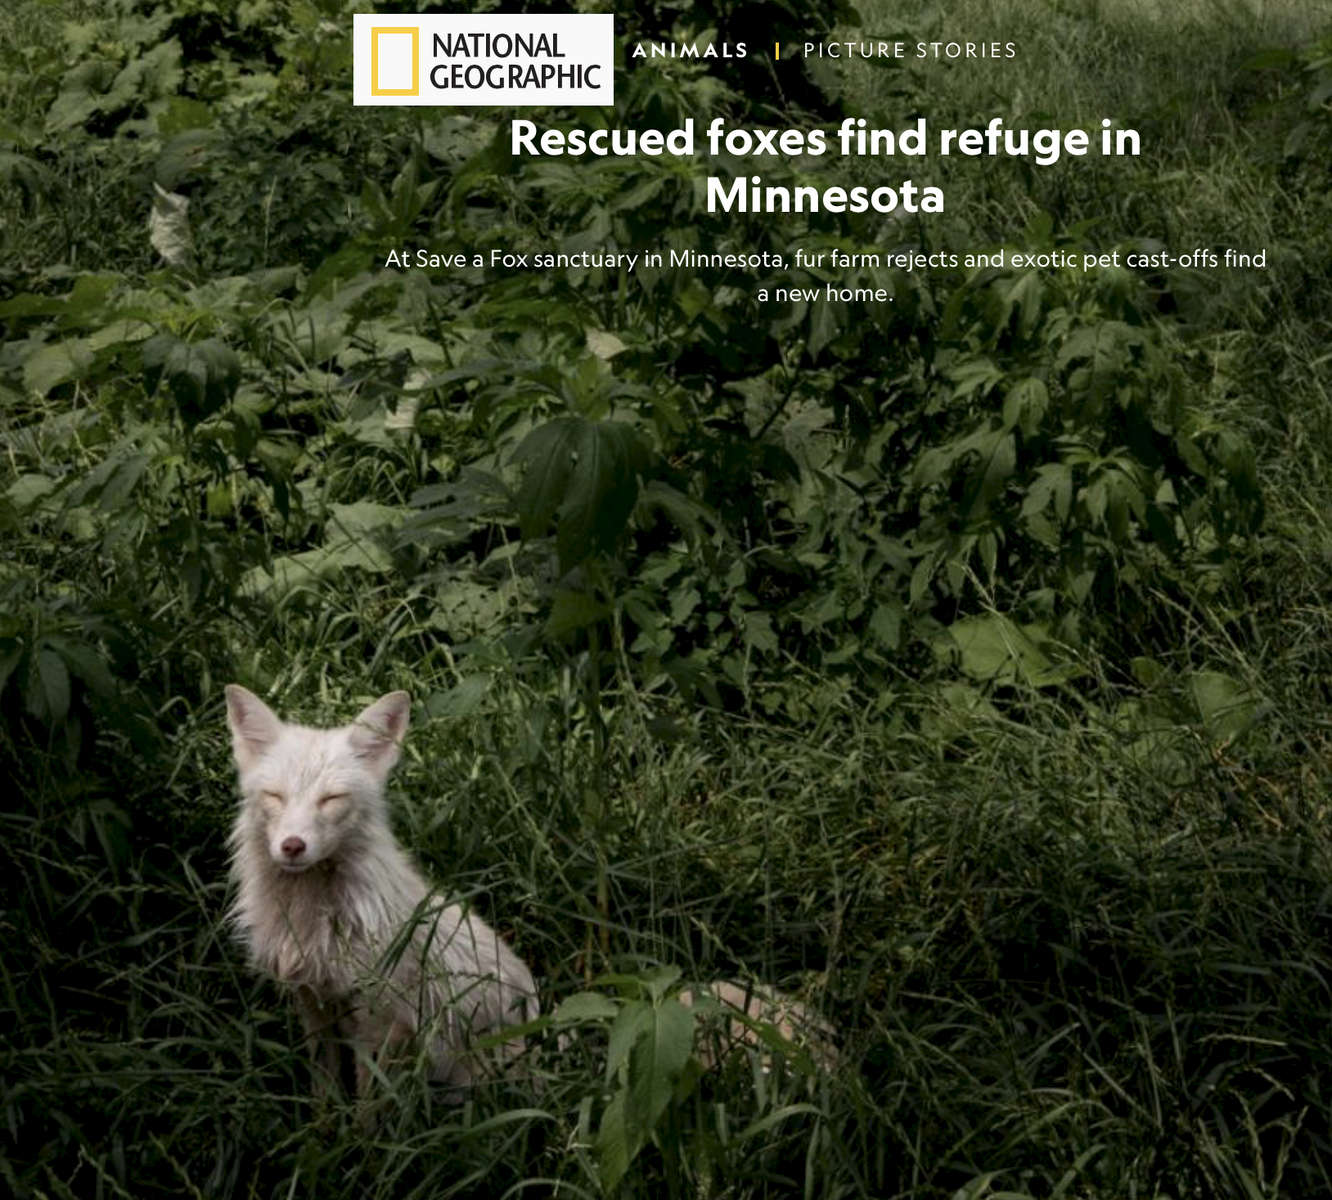 National Geographic: Rescued foxes find refuge in Minnesota FEBRUARY 6, 2019 At Save a Fox sanctuary in Minnesota, fur farm rejects and exotic pet cast-offs find a new home.